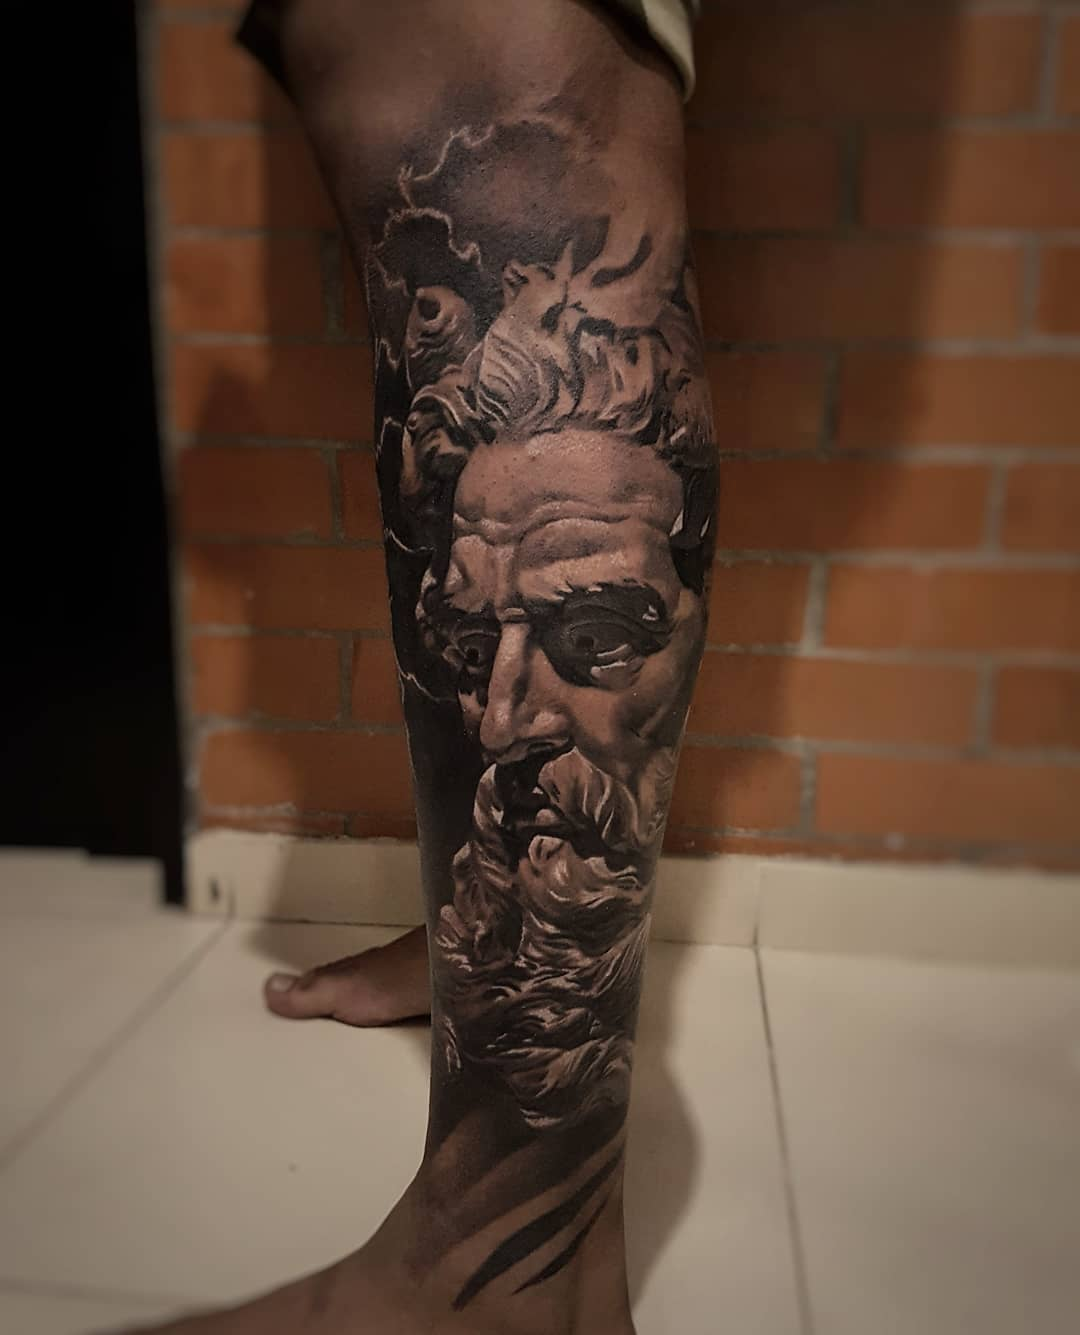 https://artdrivertattoomachines.com/wp-content/uploads/2019/10/adrada.art_42648151_253593022173130_3994461432340531572_n.jpg